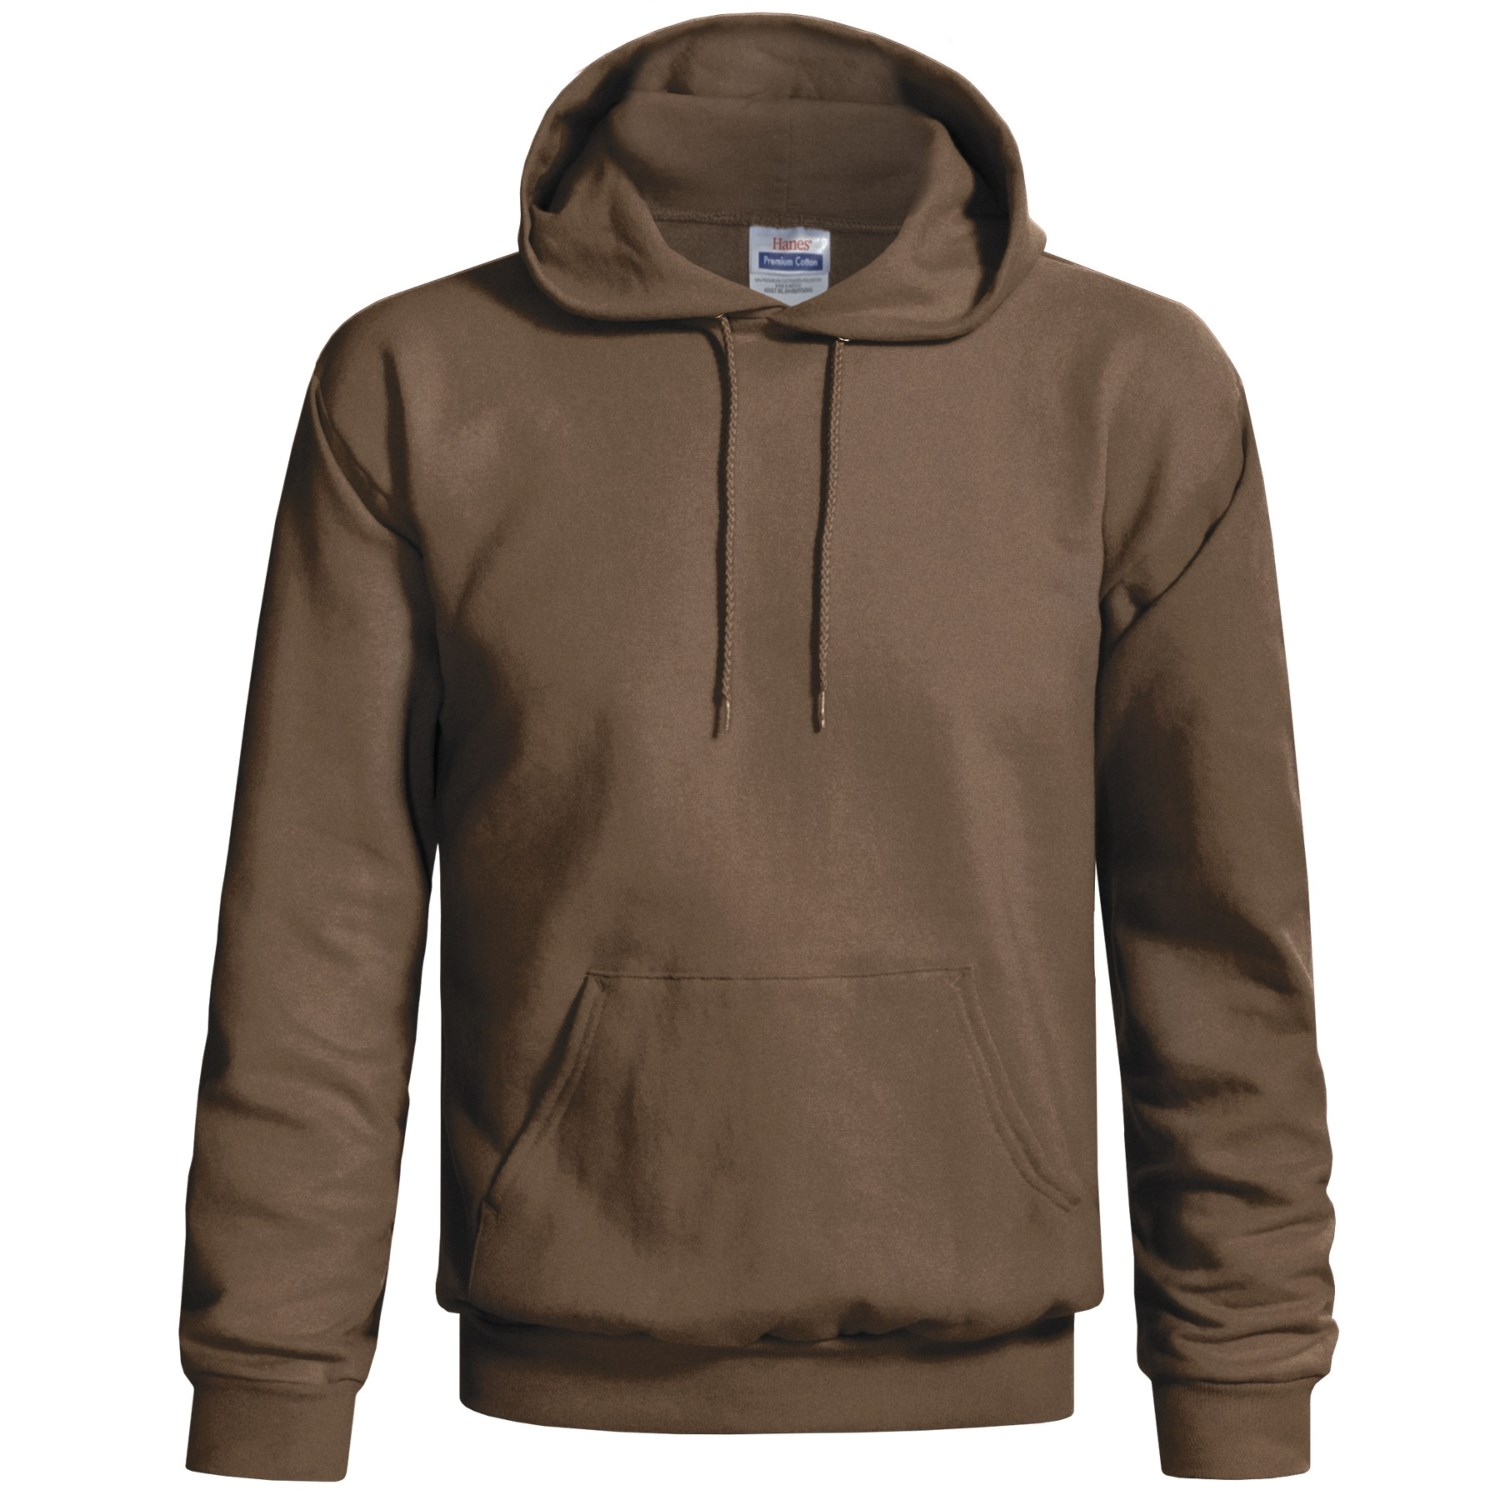 Design Men's Carhartt Midweight Hooded Pullover Sweatshirts online. Free shipping and no minimums or setups for custom Carhartt sweatshirts. Free design templates. Over 10 million customer designs since